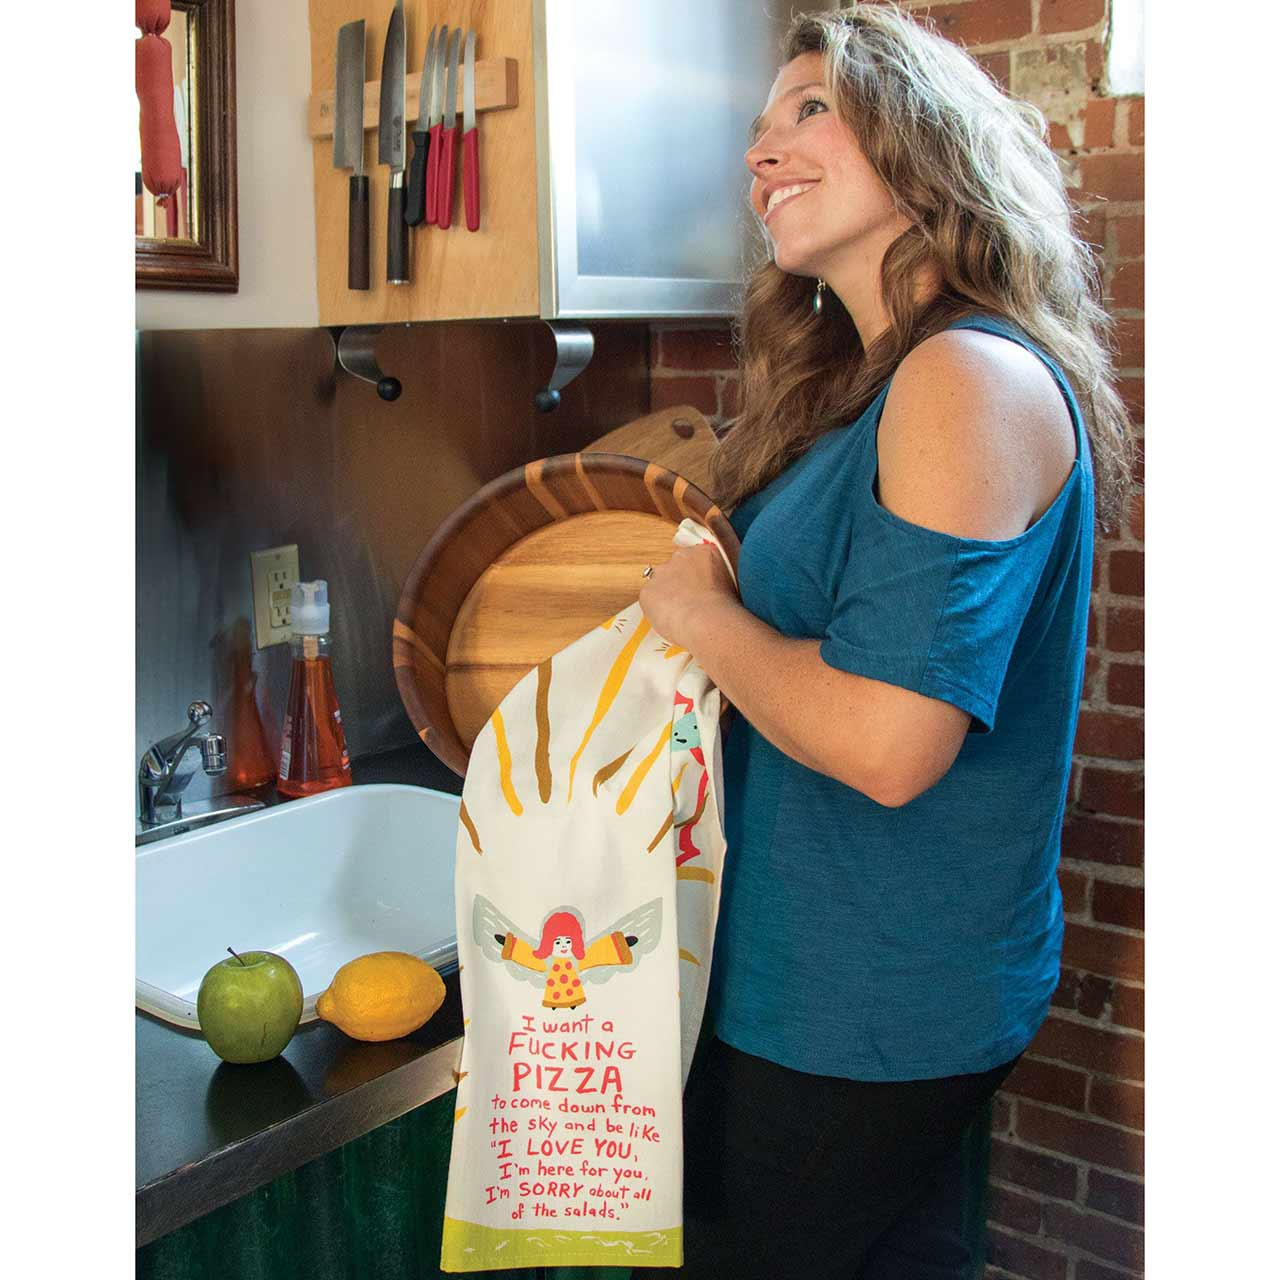 'I want a fucking pizza...' Dish Towel by Blue Q  | The Design Gift Shop